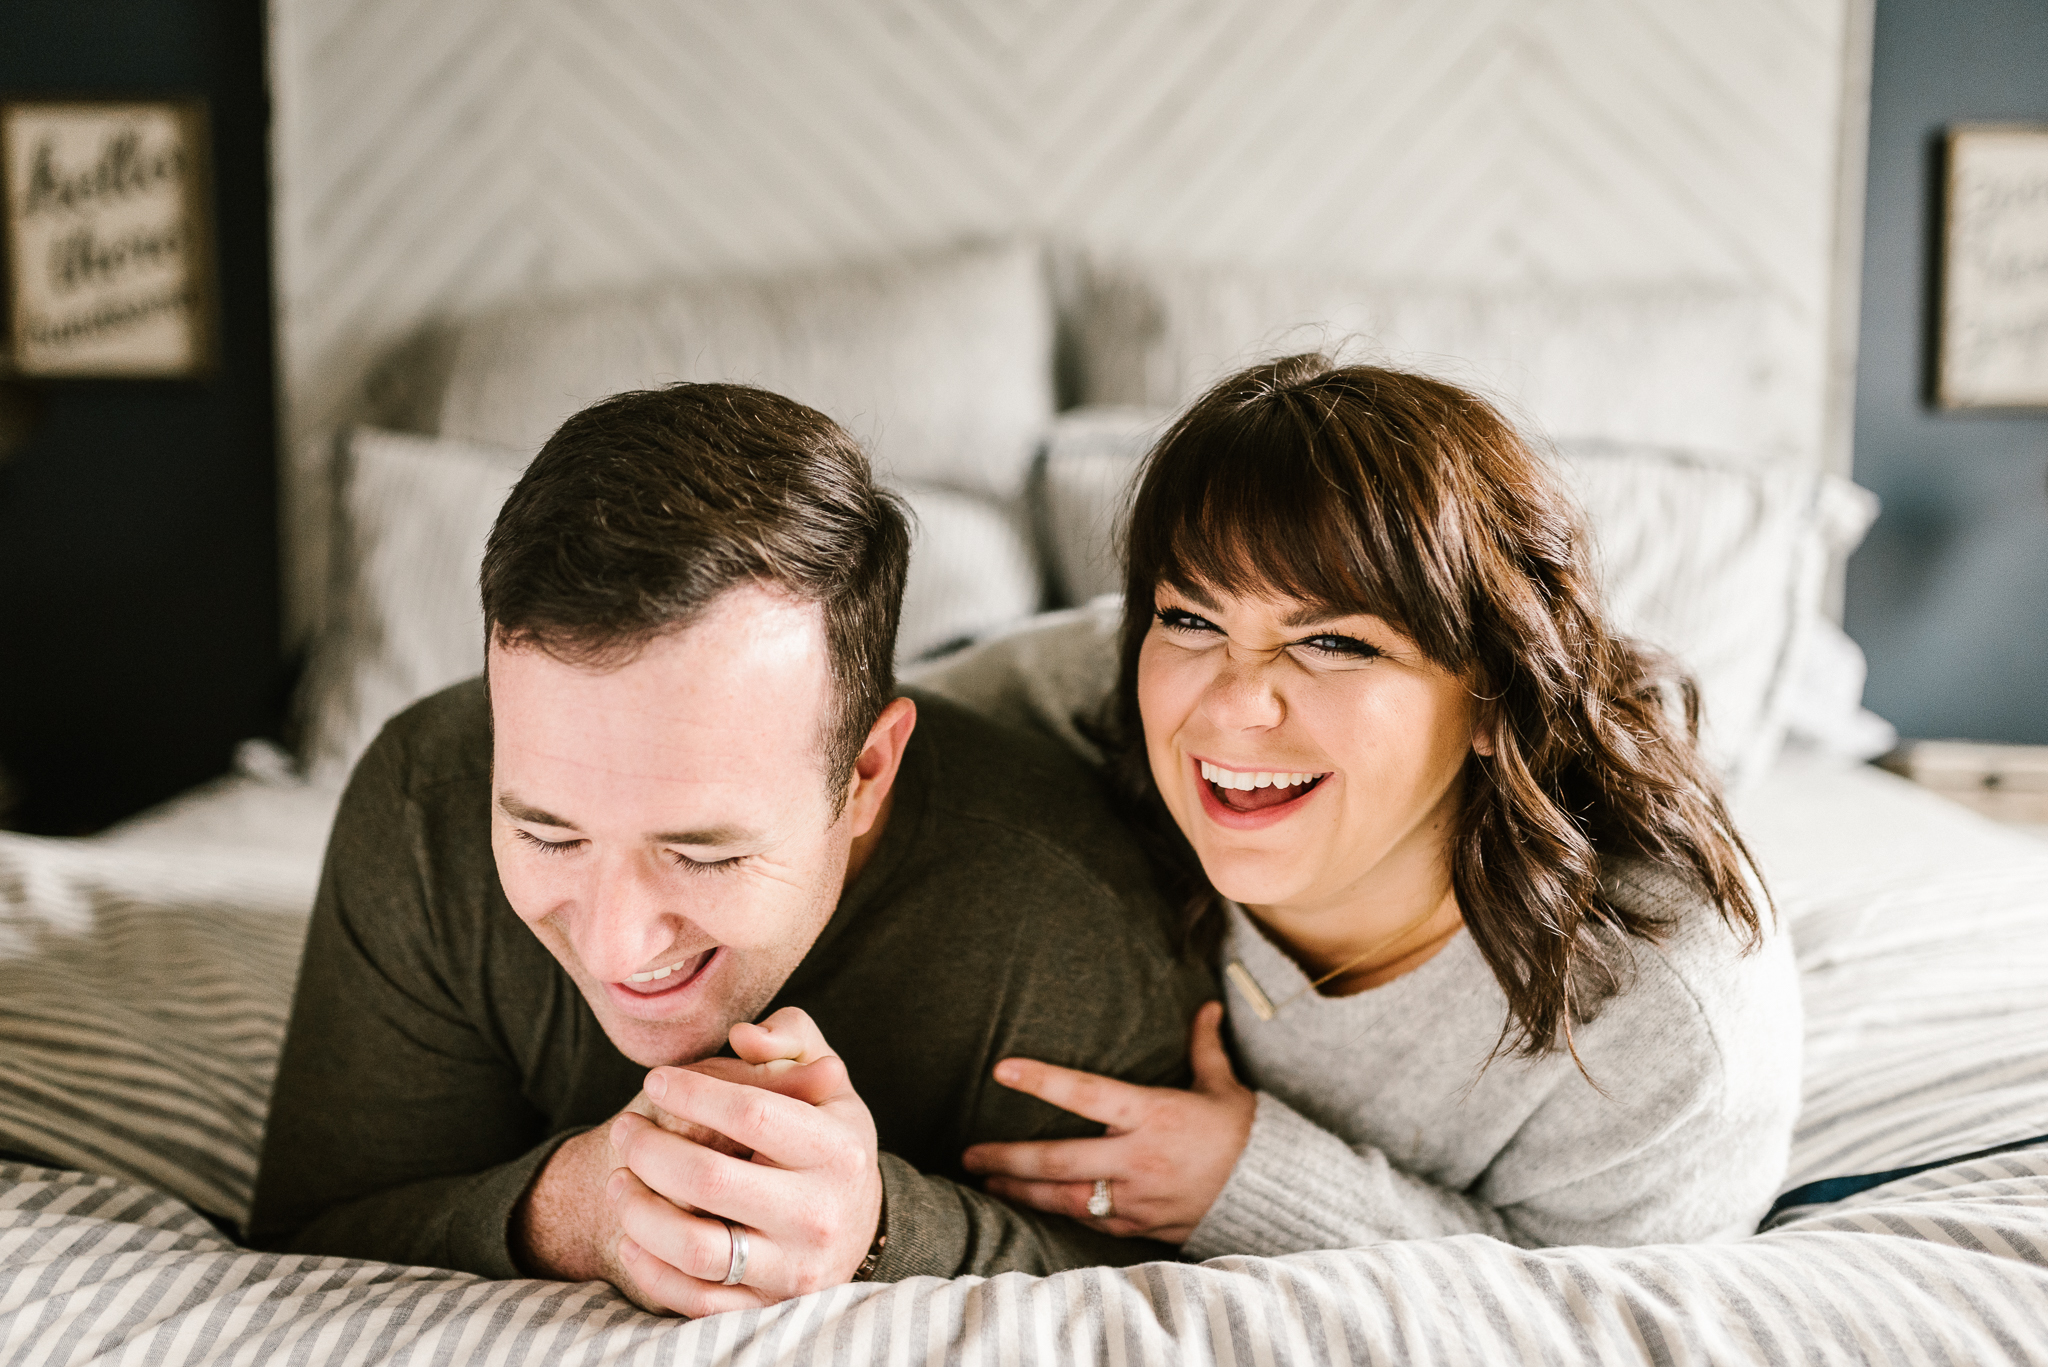 20180128-Mitch and Kelsey282.jpg